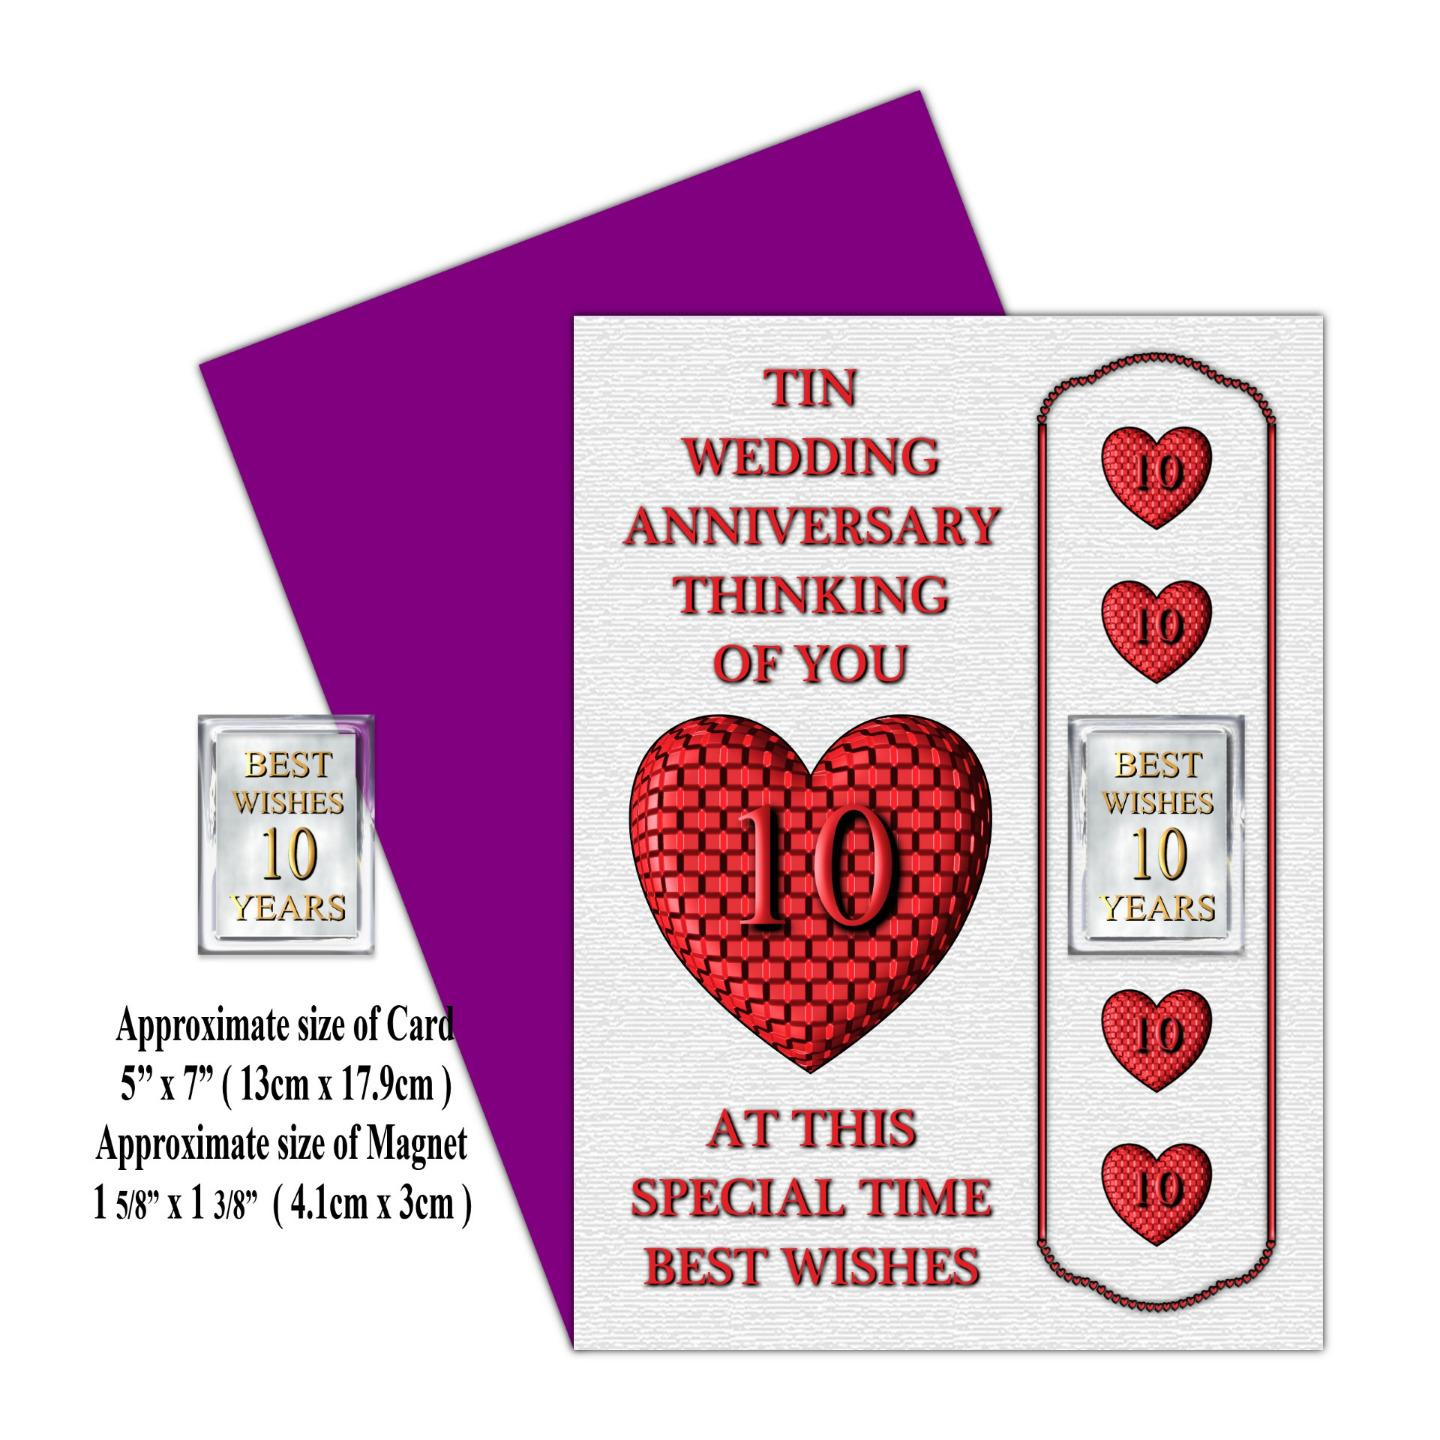 Wedding Anniversary Gifts 24th Year : ... 24th Years - Your Wedding Anniversary Card & Magnet Gift - Family